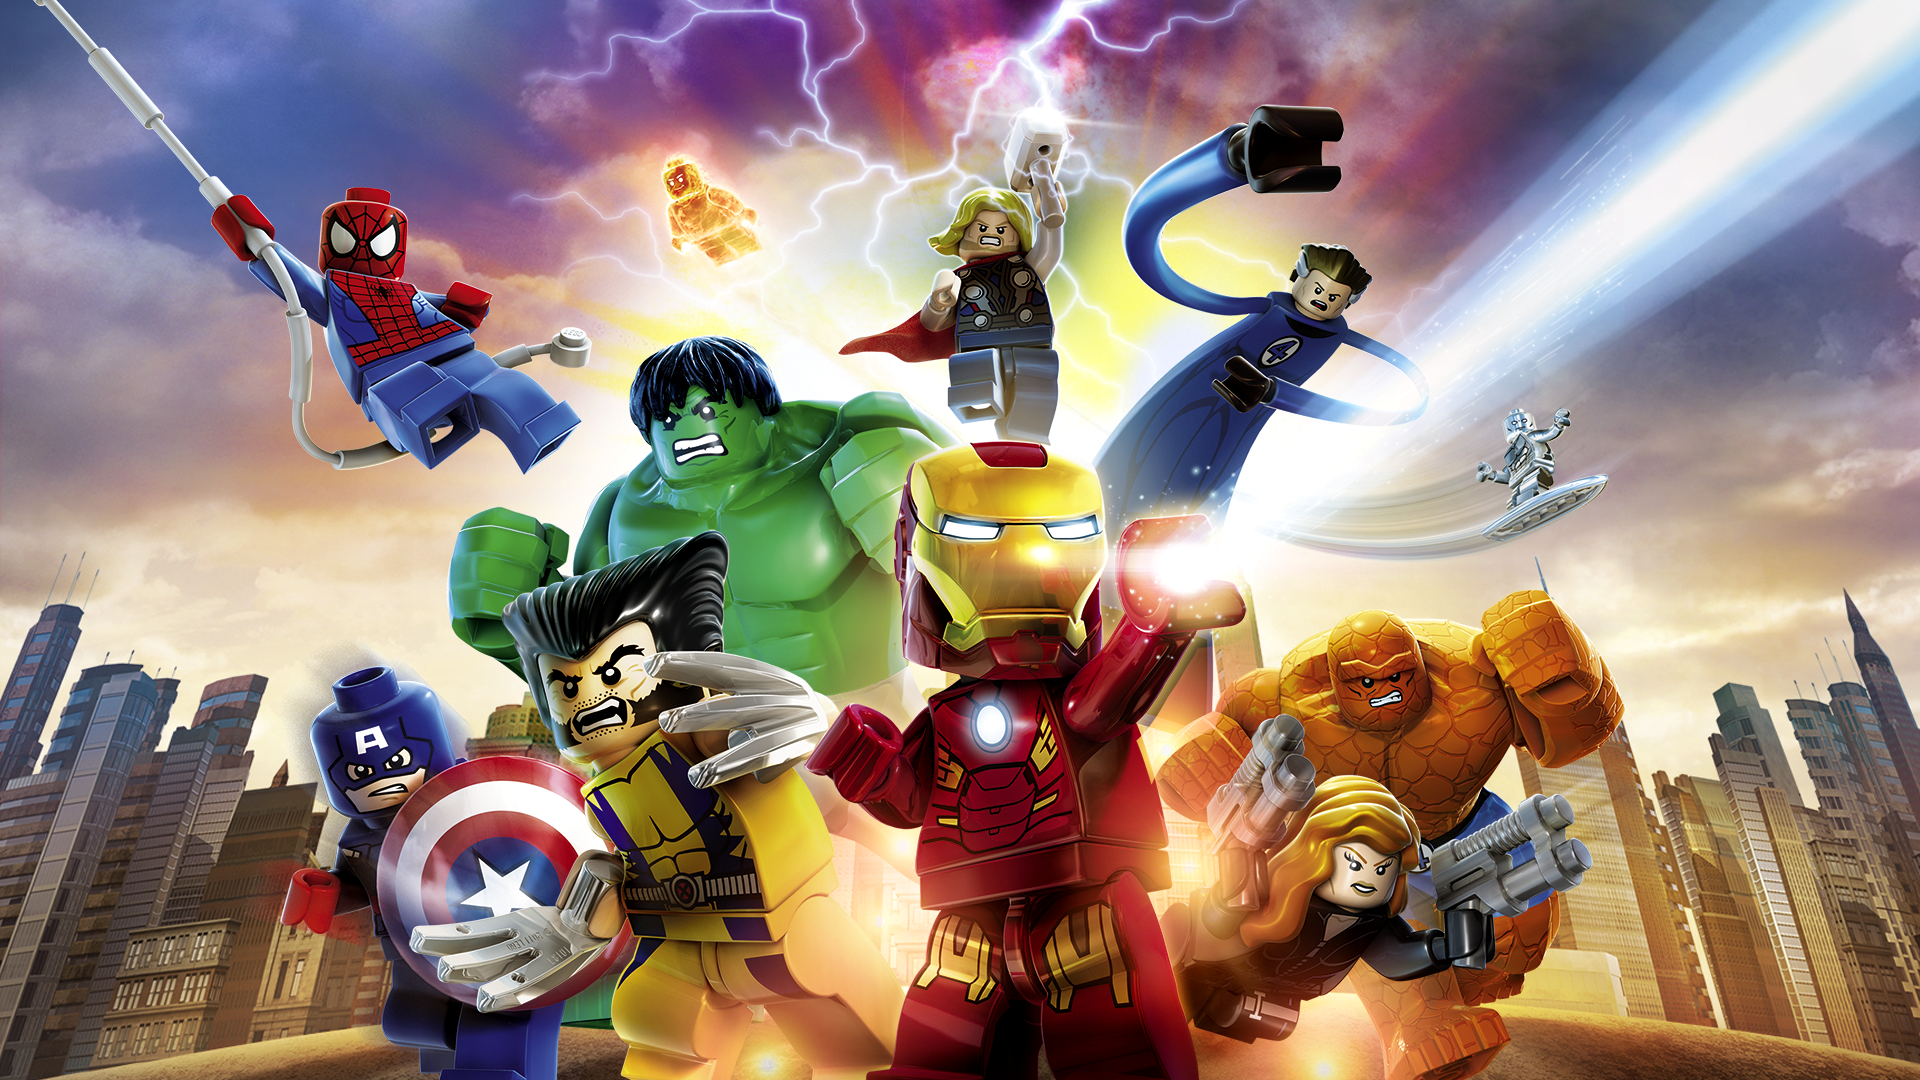 Ausmalbilder Lego Marvel Super Heroes: Game: Lego Marvel Super Heroes